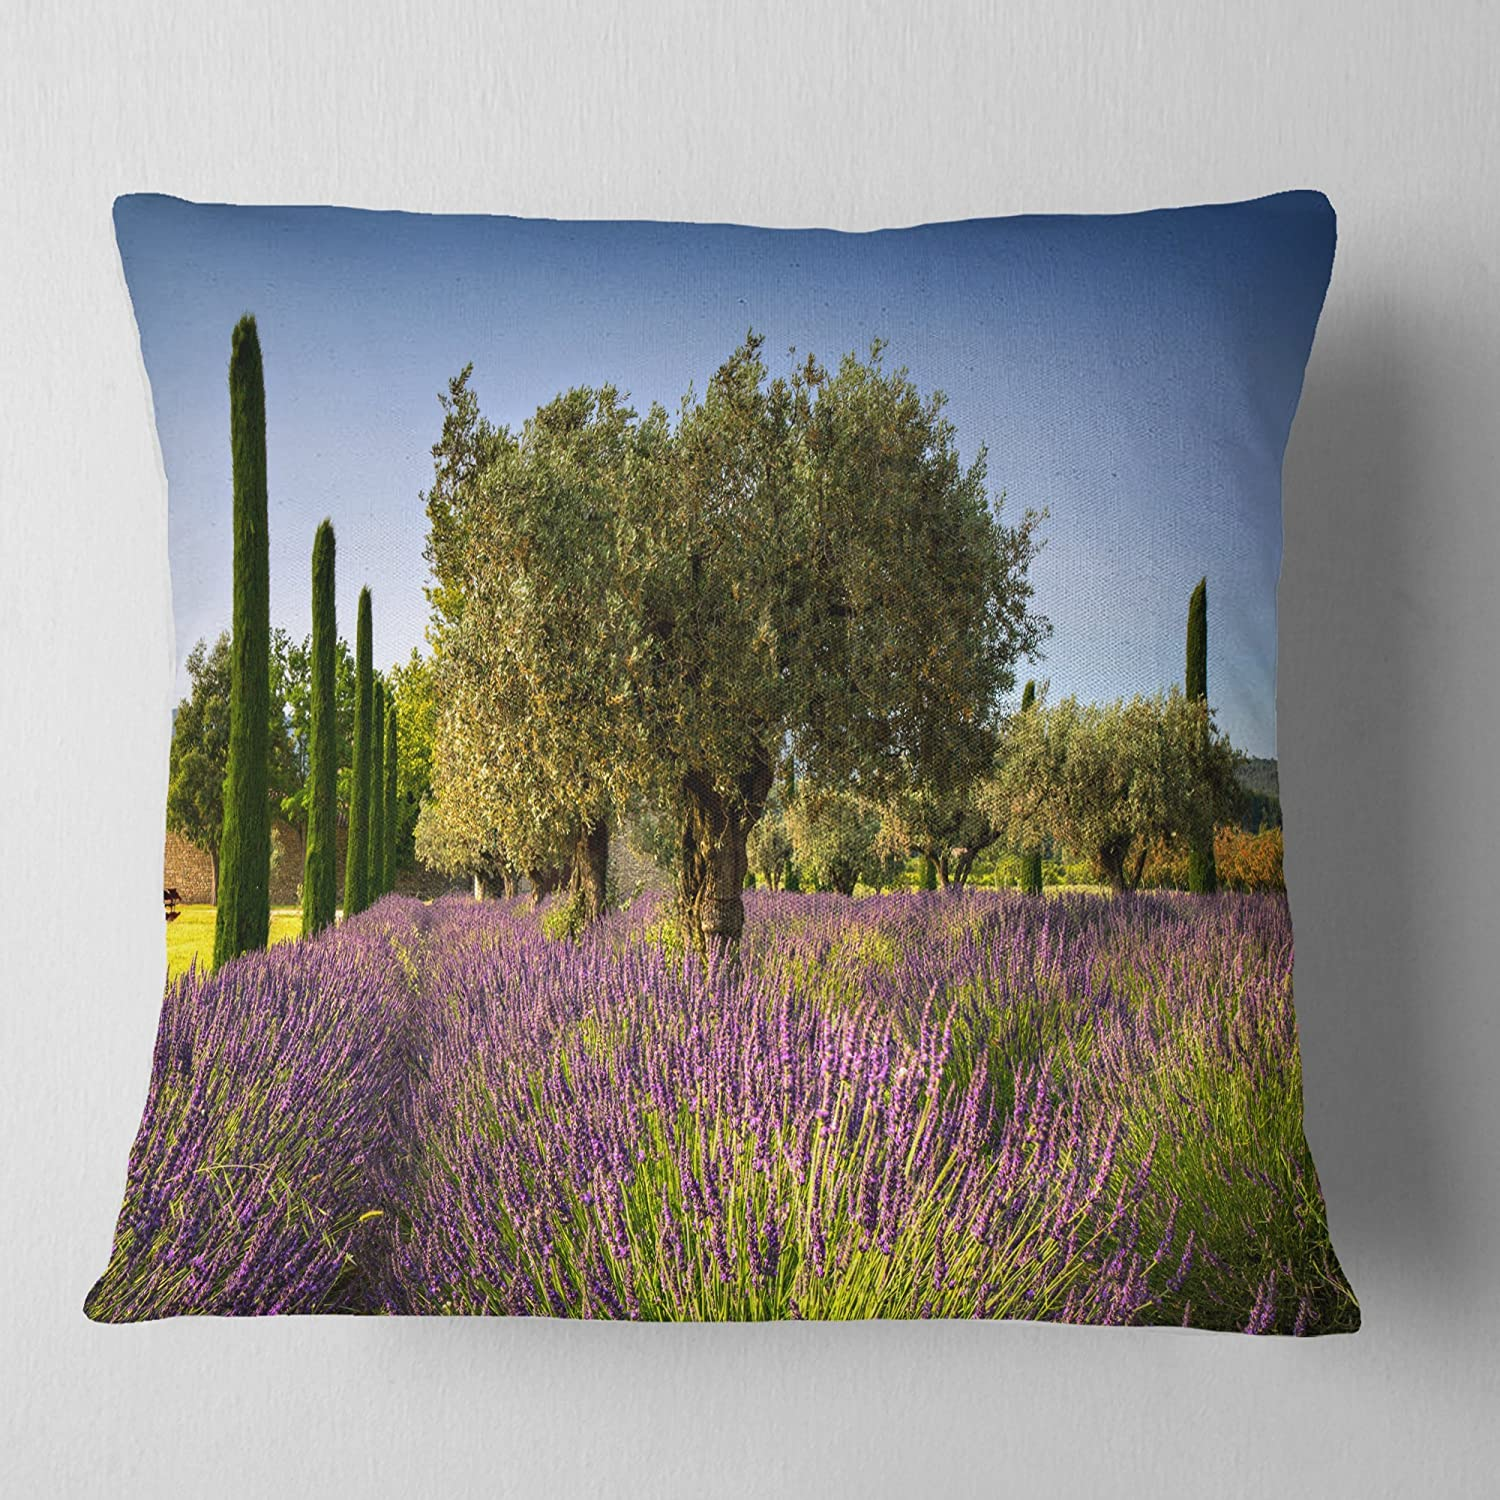 Designart CU12362-16-16 Beautiful Lavender and Olive Trees' Flower Cushion Cover for Living Room, Sofa Throw Pillow 16 in. x 16 in. in, Insert Printed On Both Side